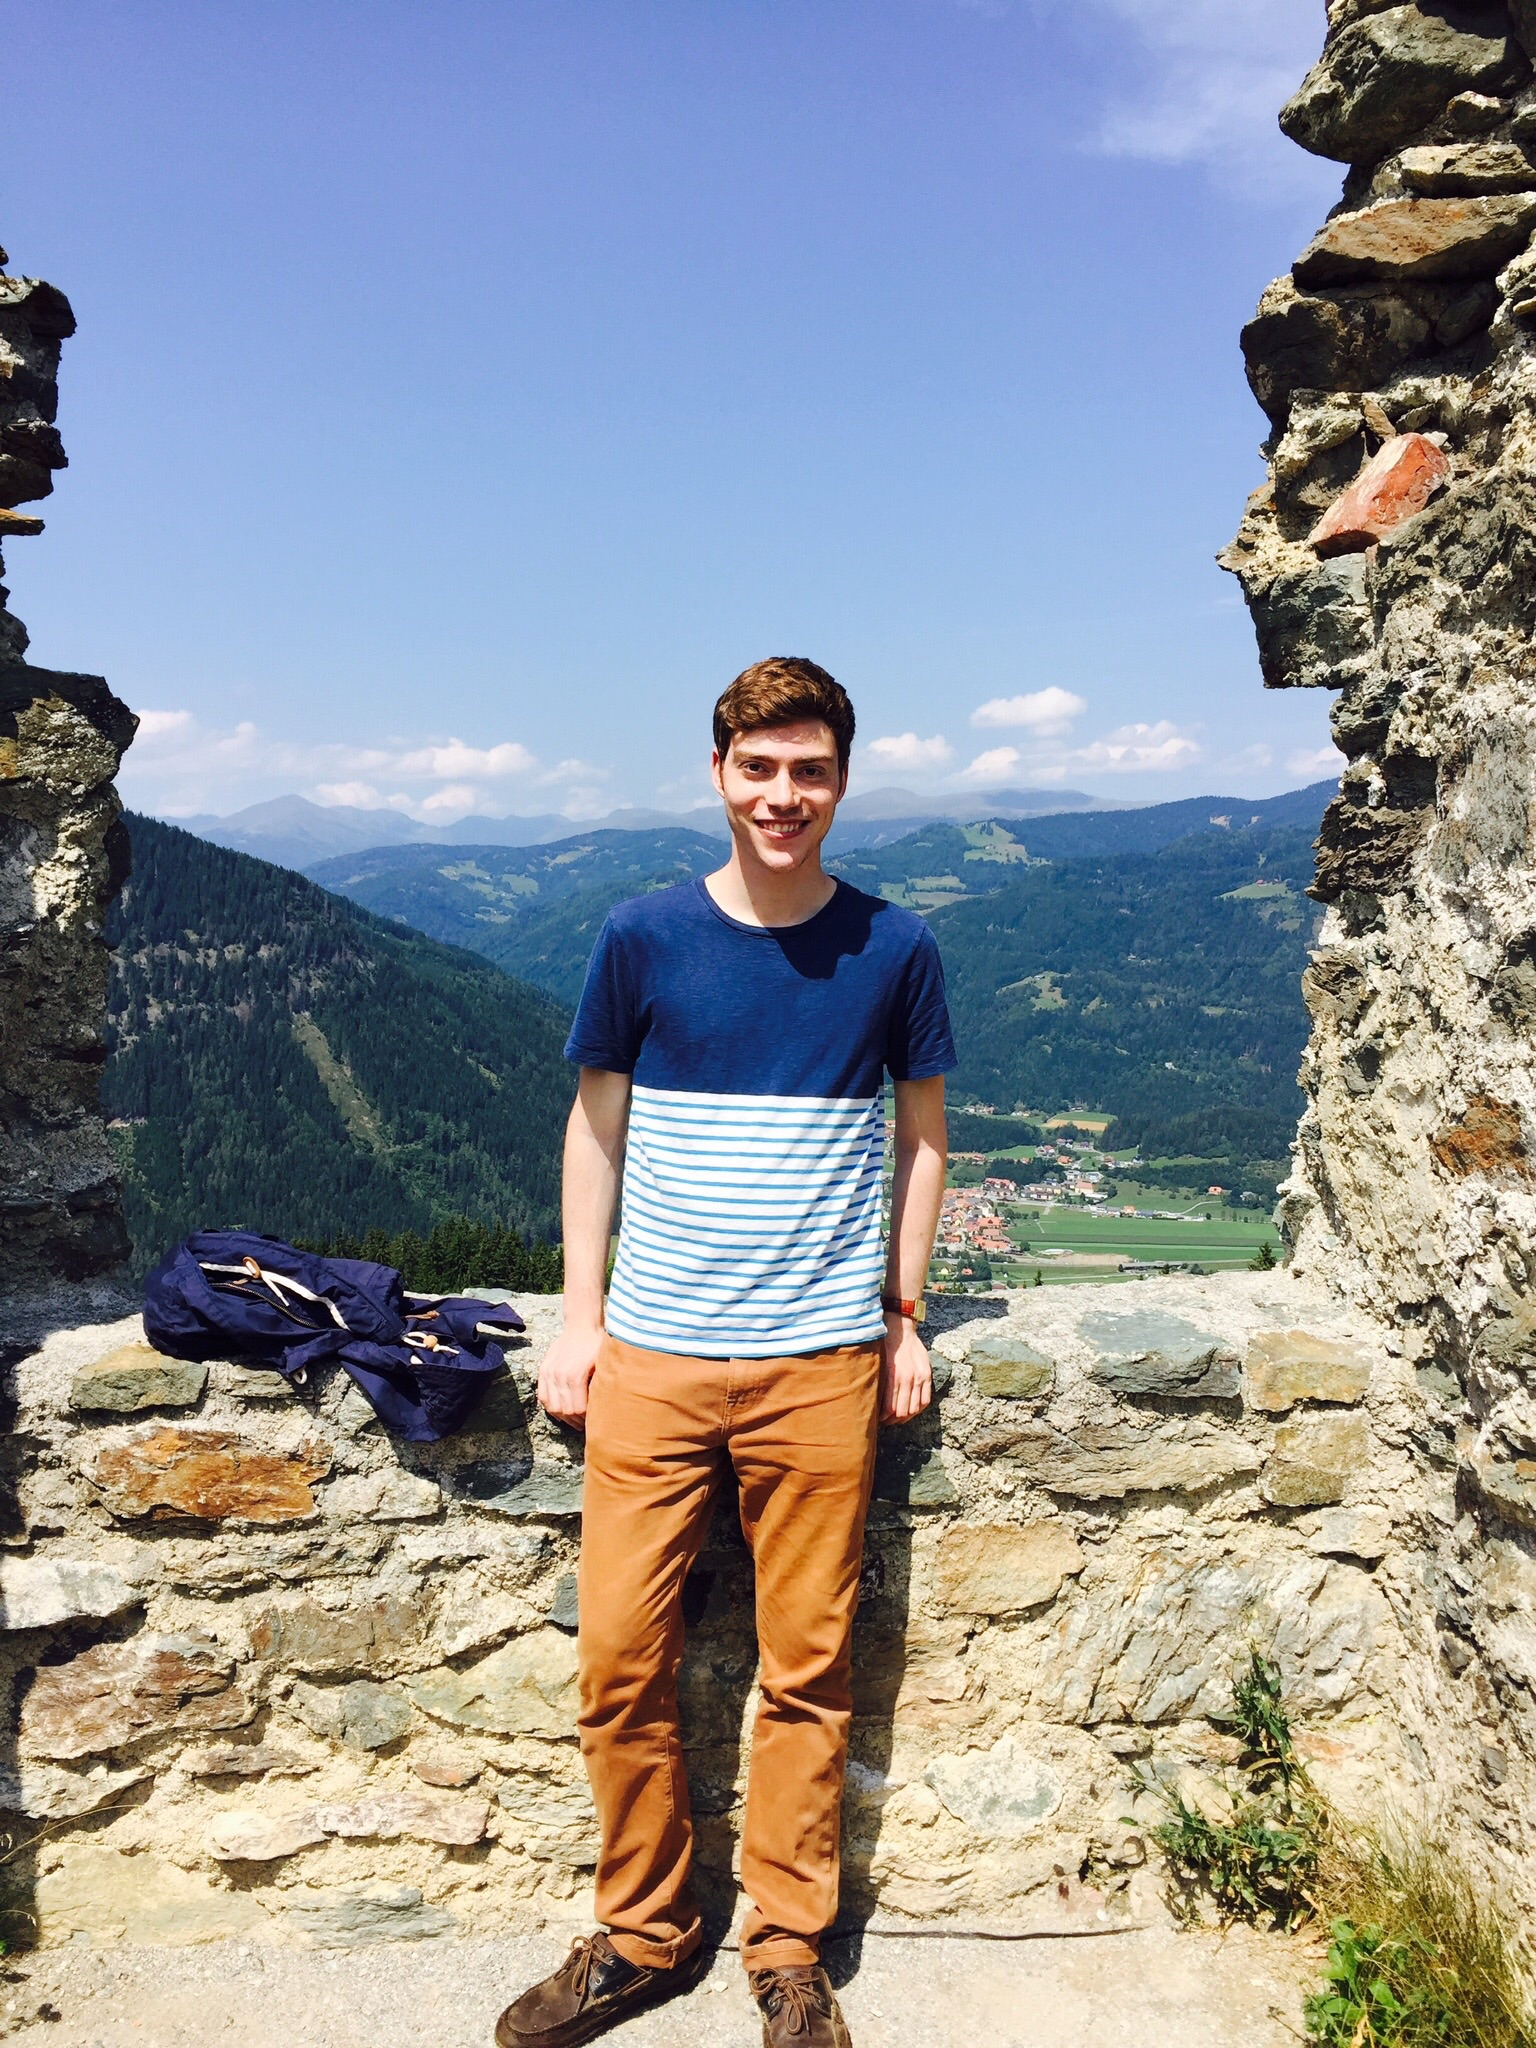 Hiking in the Austrian Alps